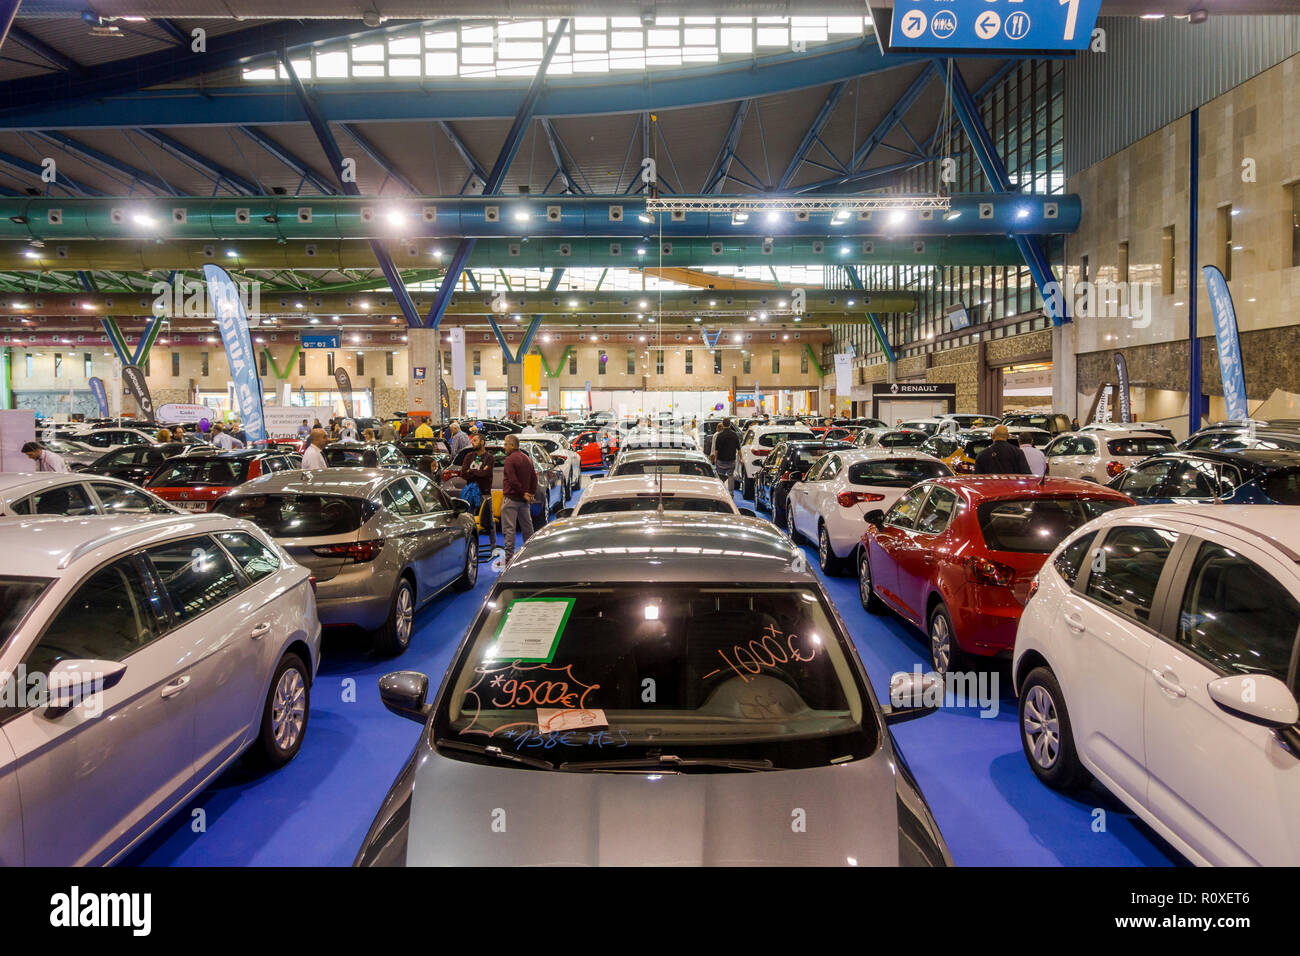 Second hand car show,cars on display, fair, cars for sale in Malaga, Spain. - Stock Image